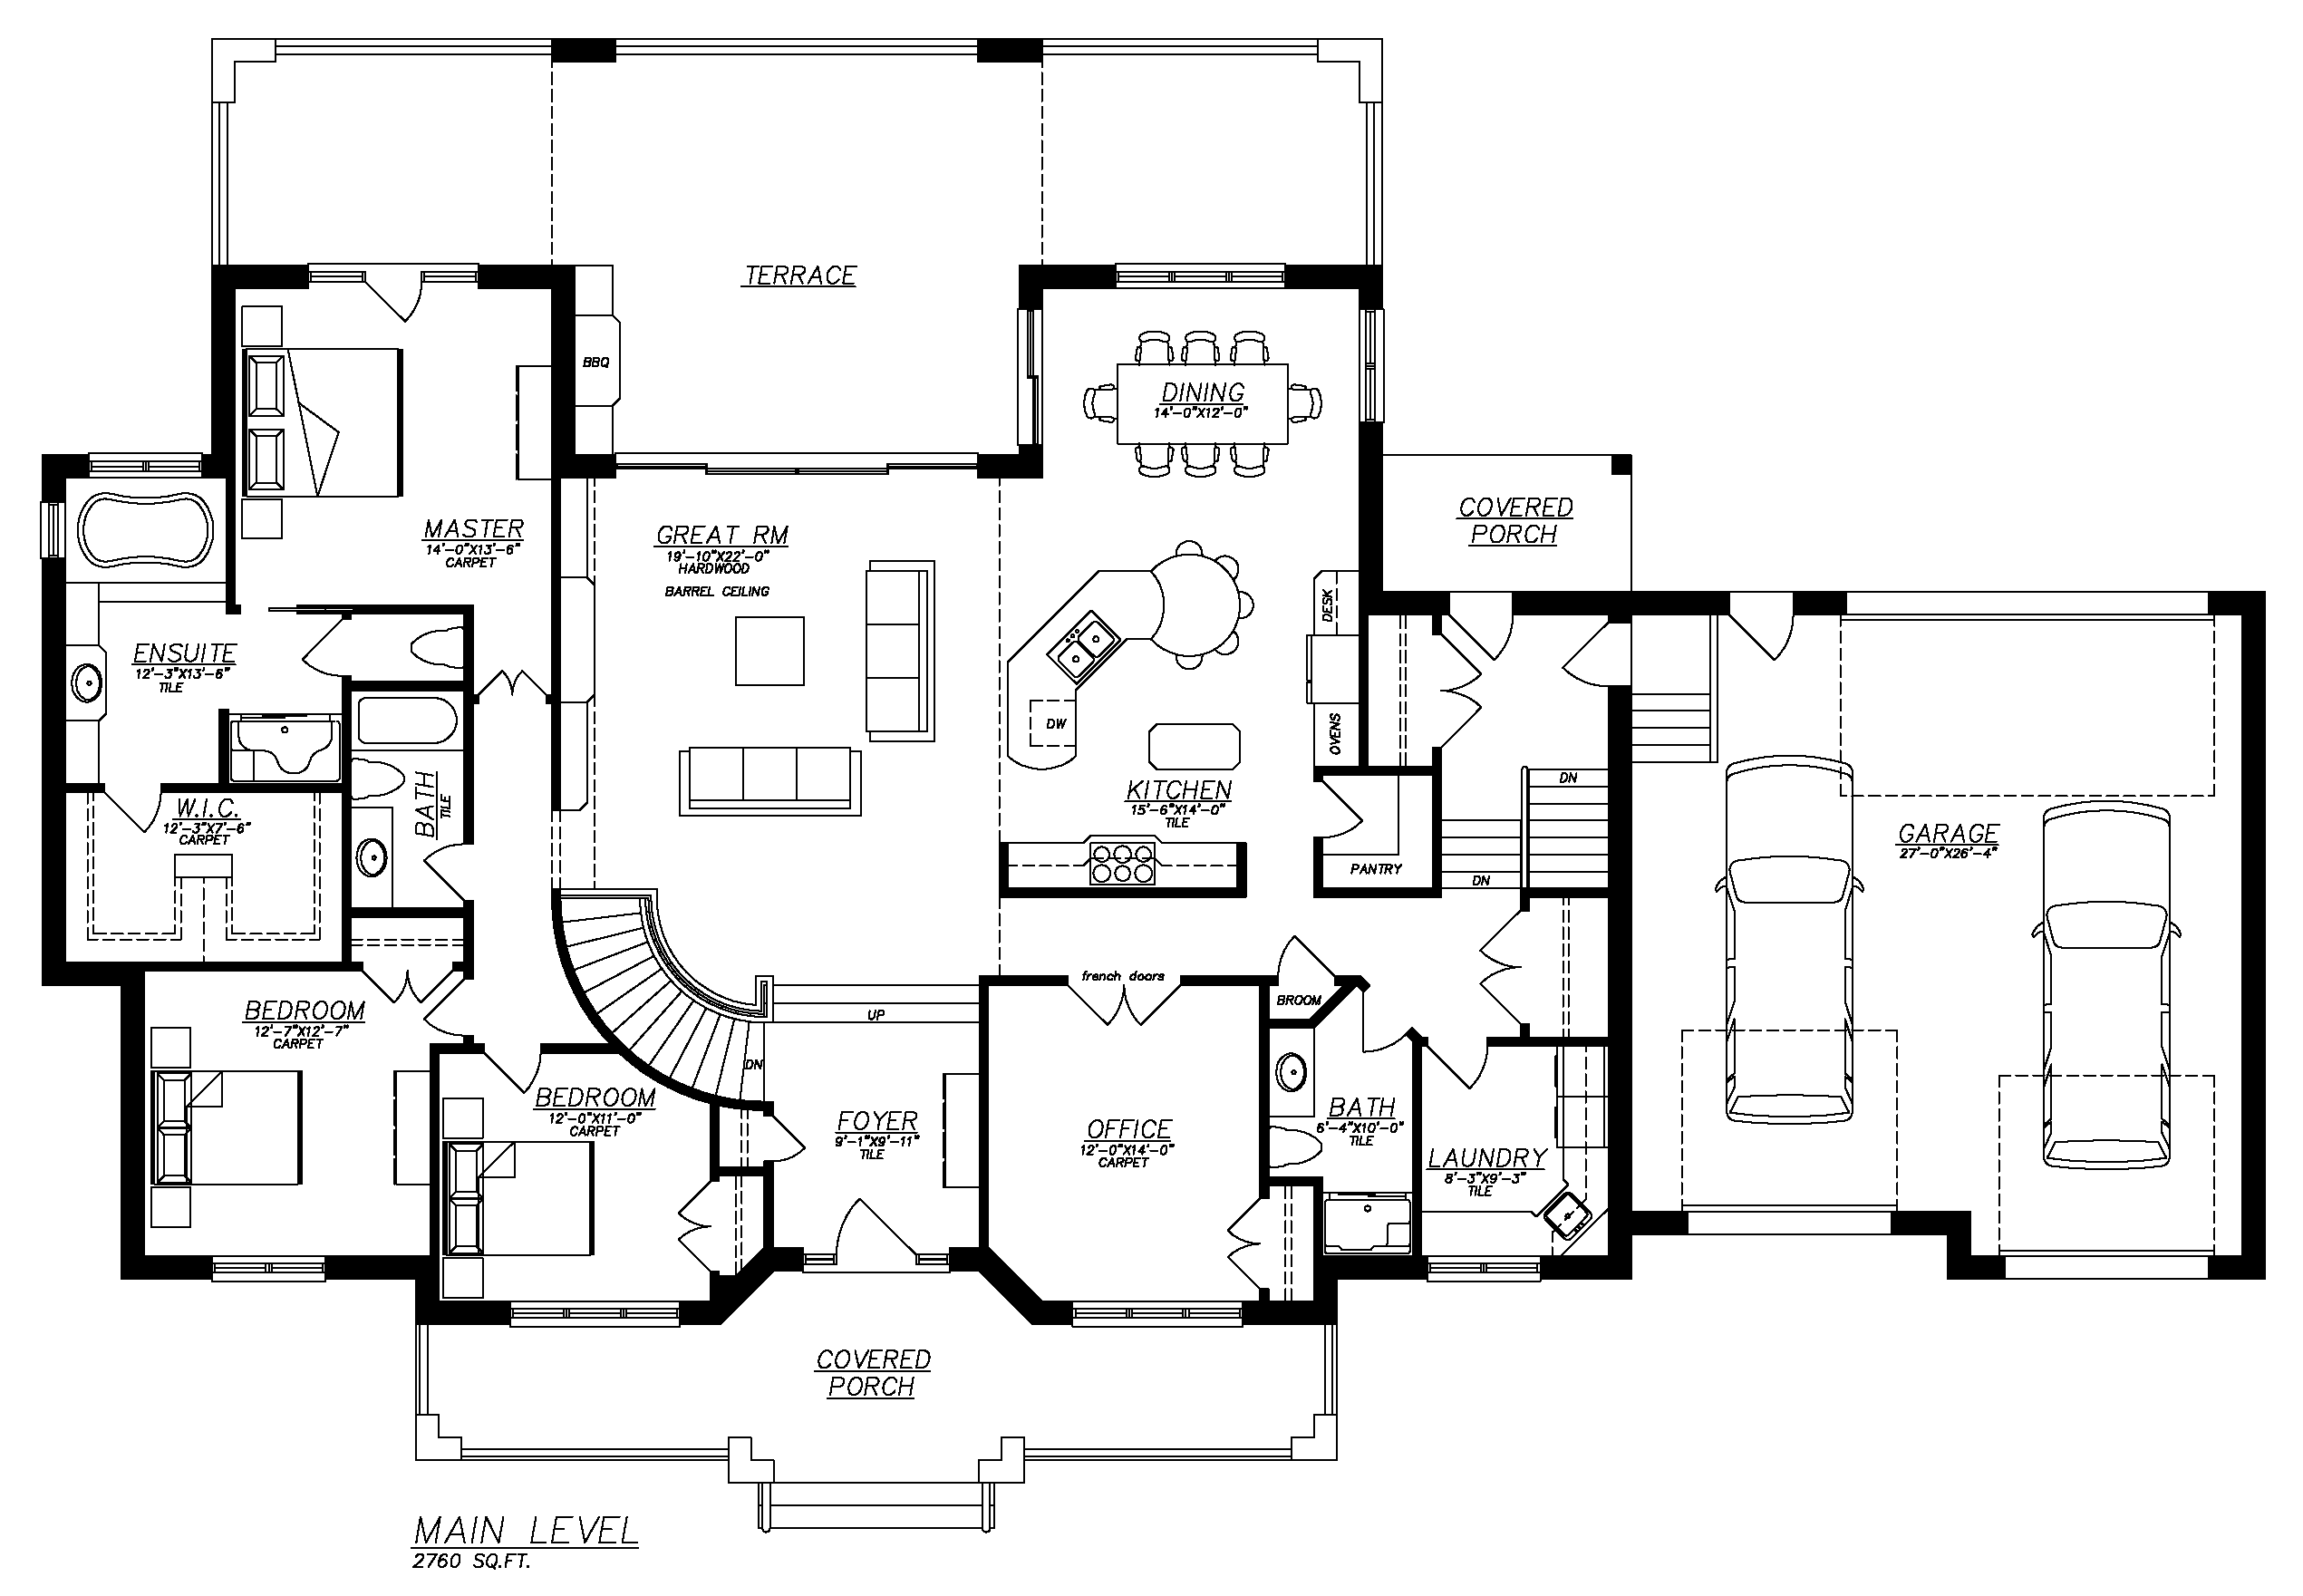 respond moreover Hwepl01713 moreover House Plan page BALLENTINE 2915 B as well 1700 Sq Ft House Plans further 2741 Square Feet 4 Bedrooms 3 Bathroom Farm House Plans 0 Garage 9706. on ranch house with loft